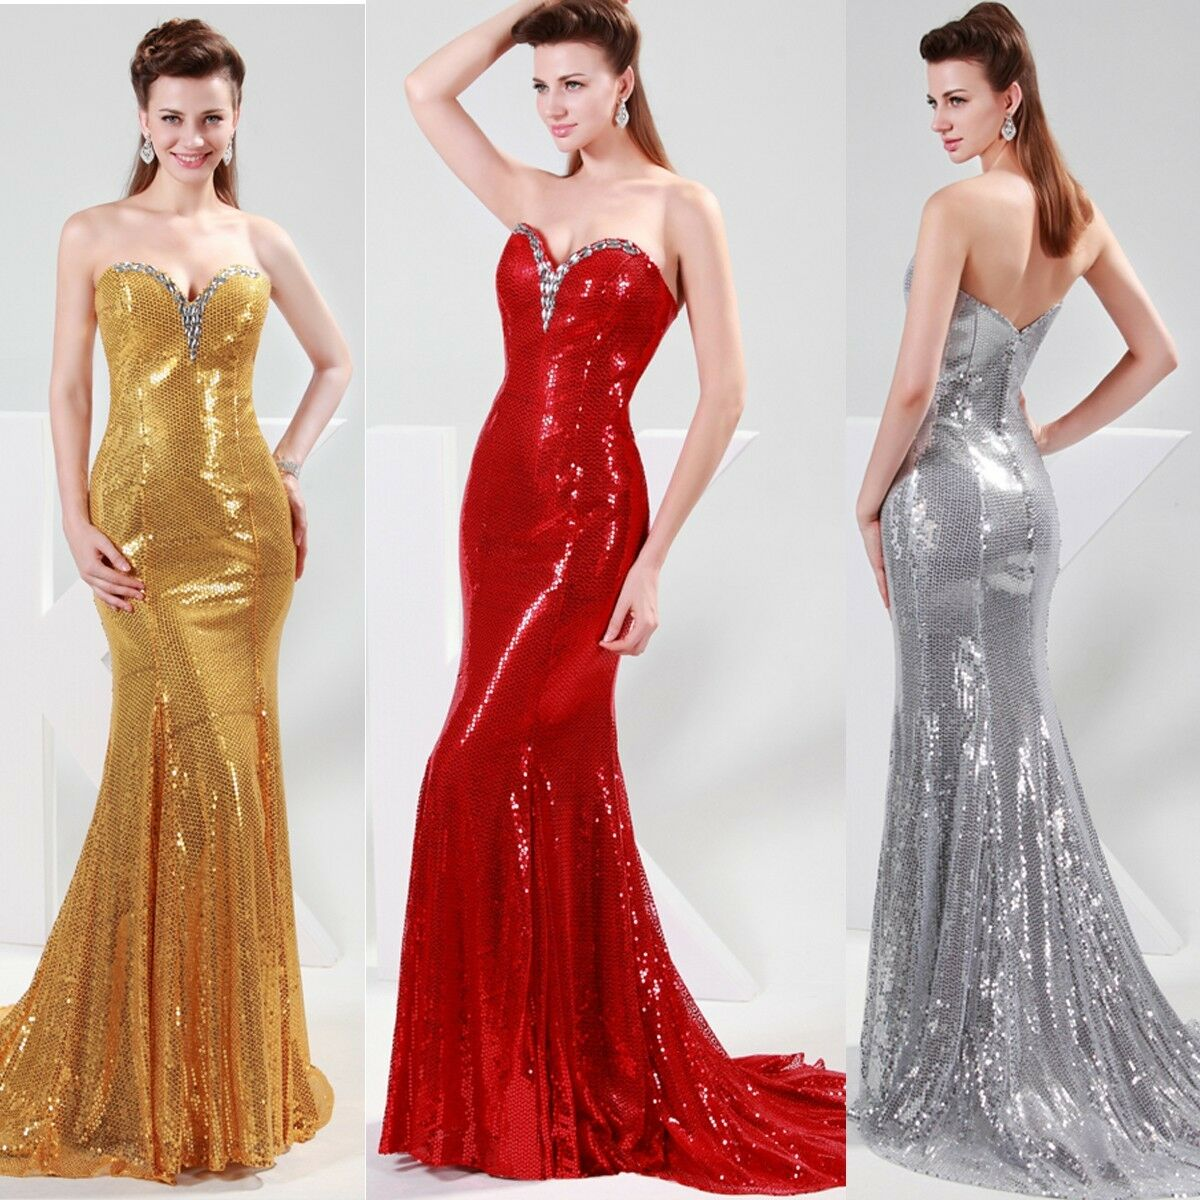 Amazing Sequins Sexy Long Formal Prom Party Ball Gown Cocktail Evening Dresses